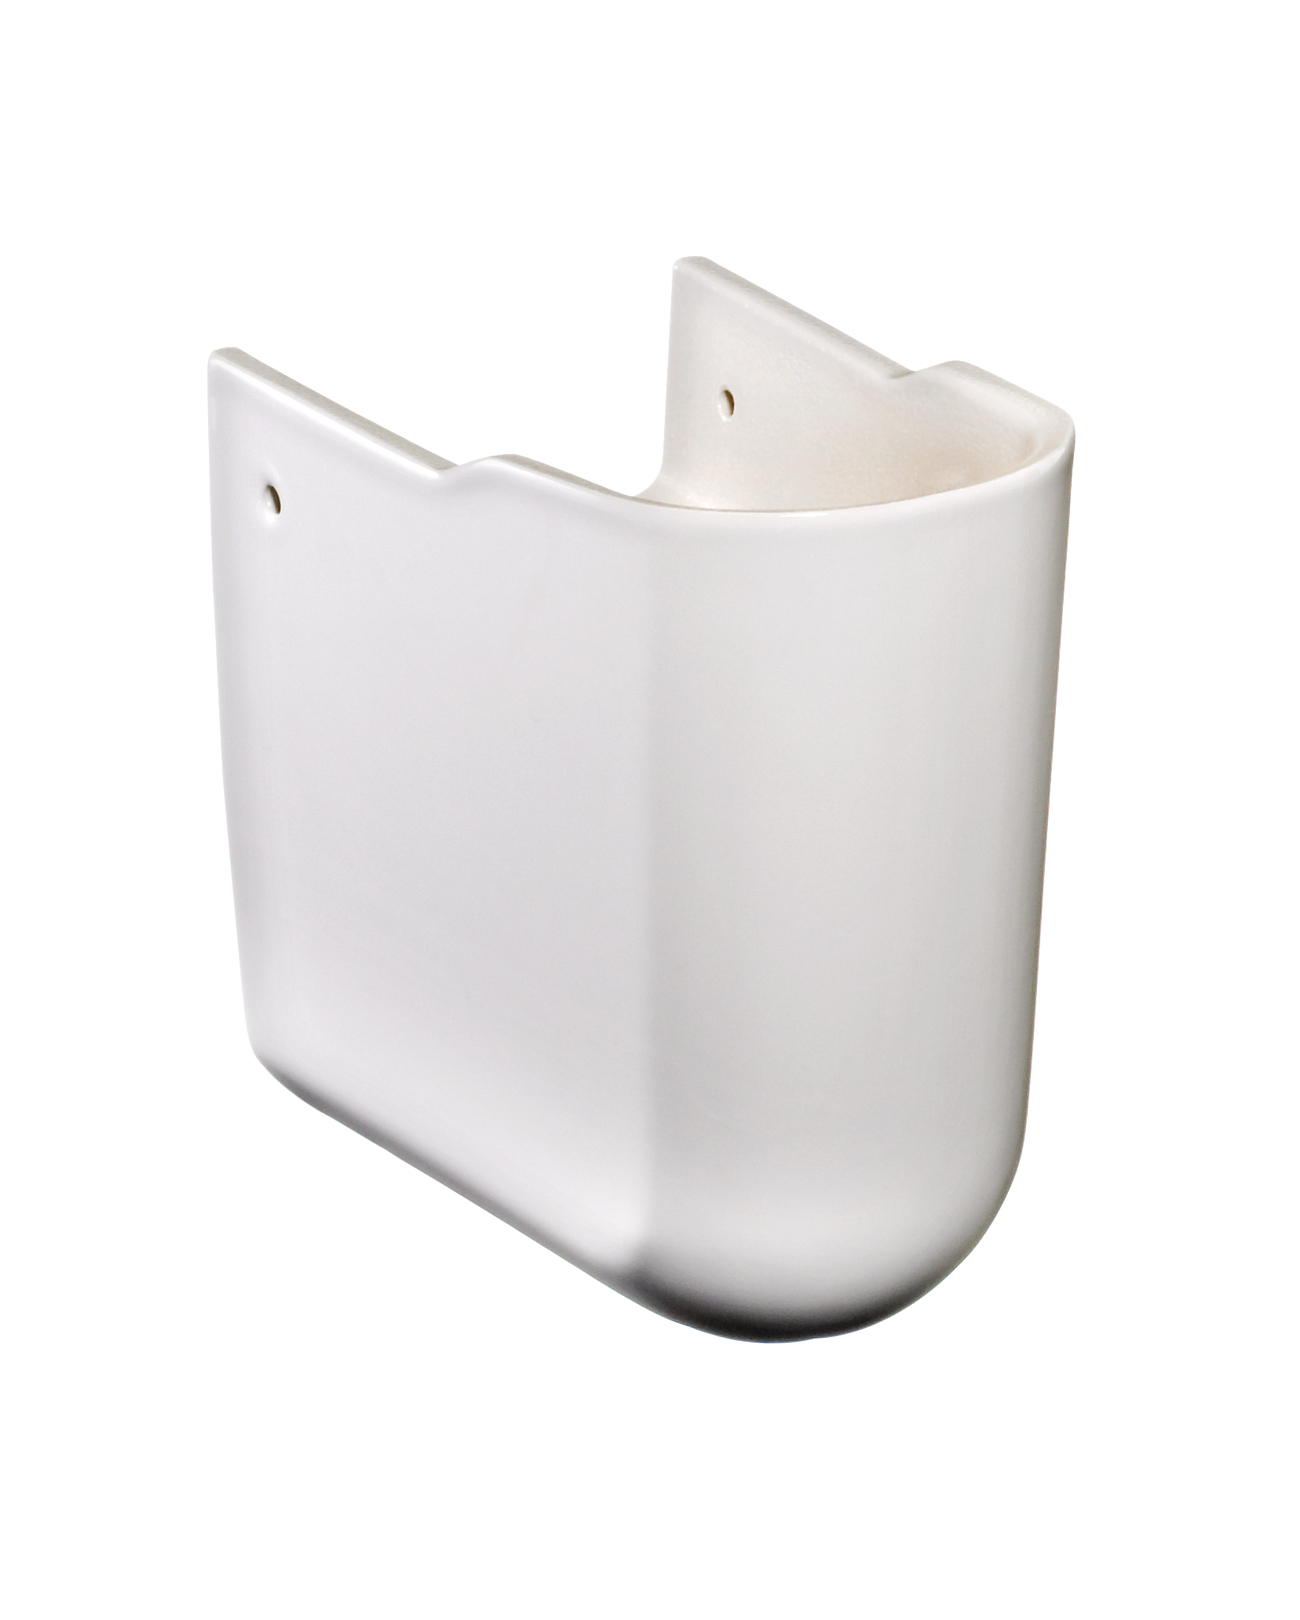 Beautiful Pedestals And Trap Covers Design For Your Bathroom Gustavsberg